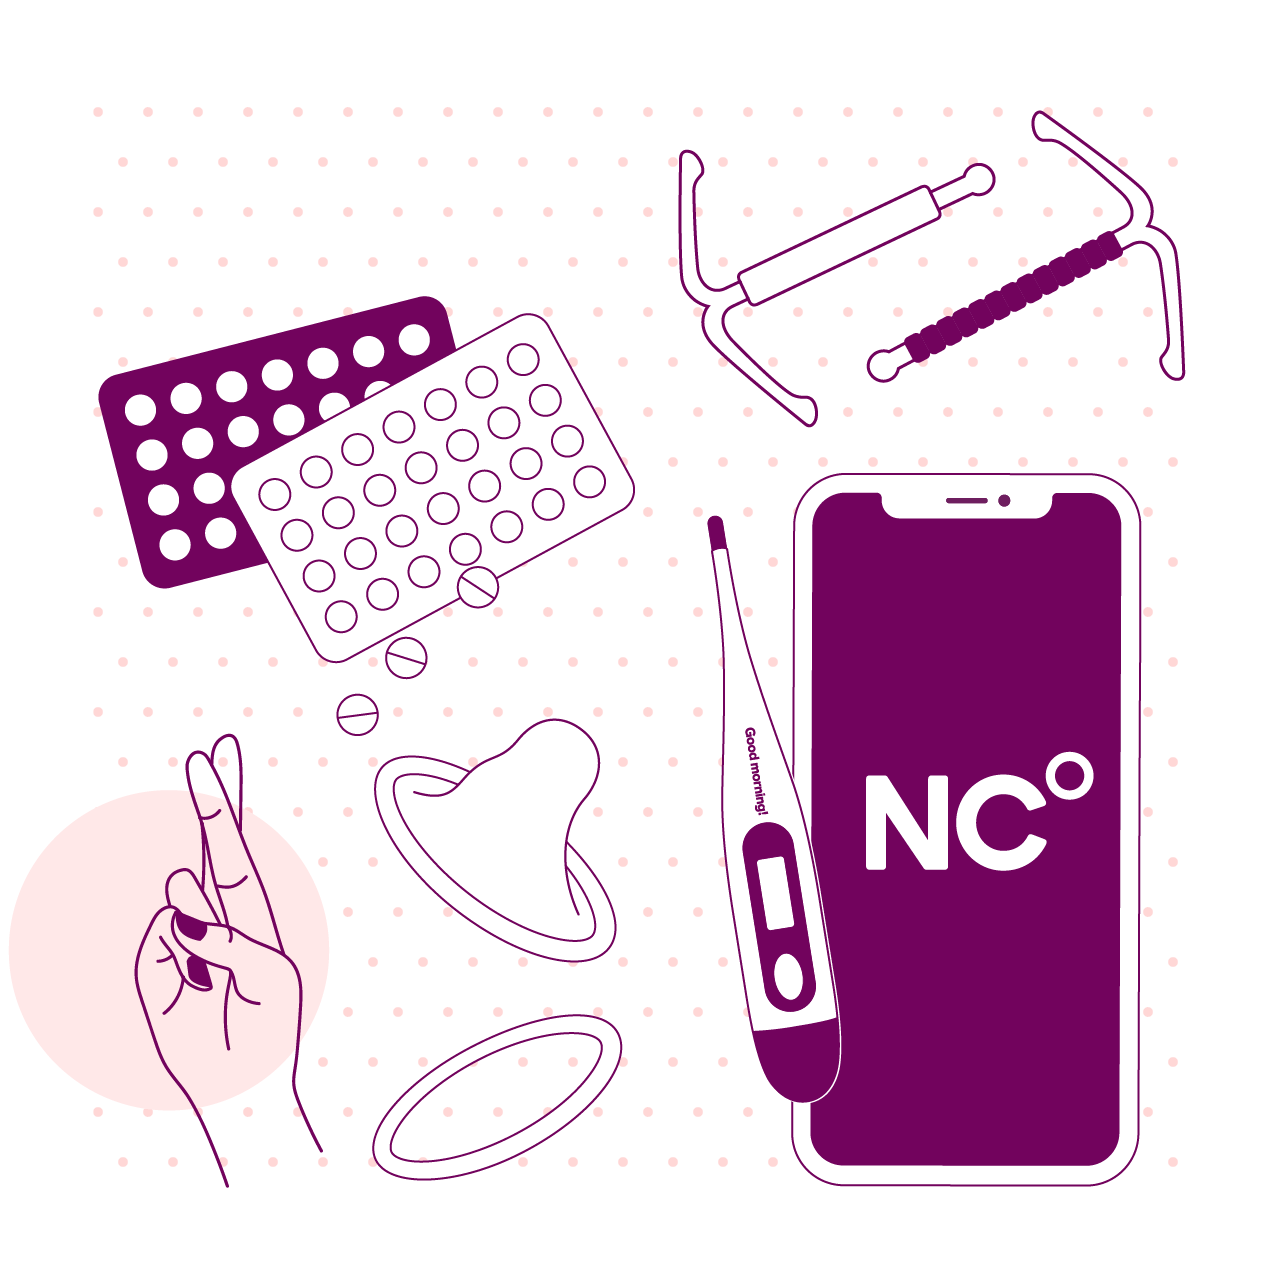 A top view of several birth control methods next to each other. Natural Cycles, Hormonal IUD, Copper IUD, a pack of contraceptive pills, a male condom, a NuvaRing and an representation of the pull out method.